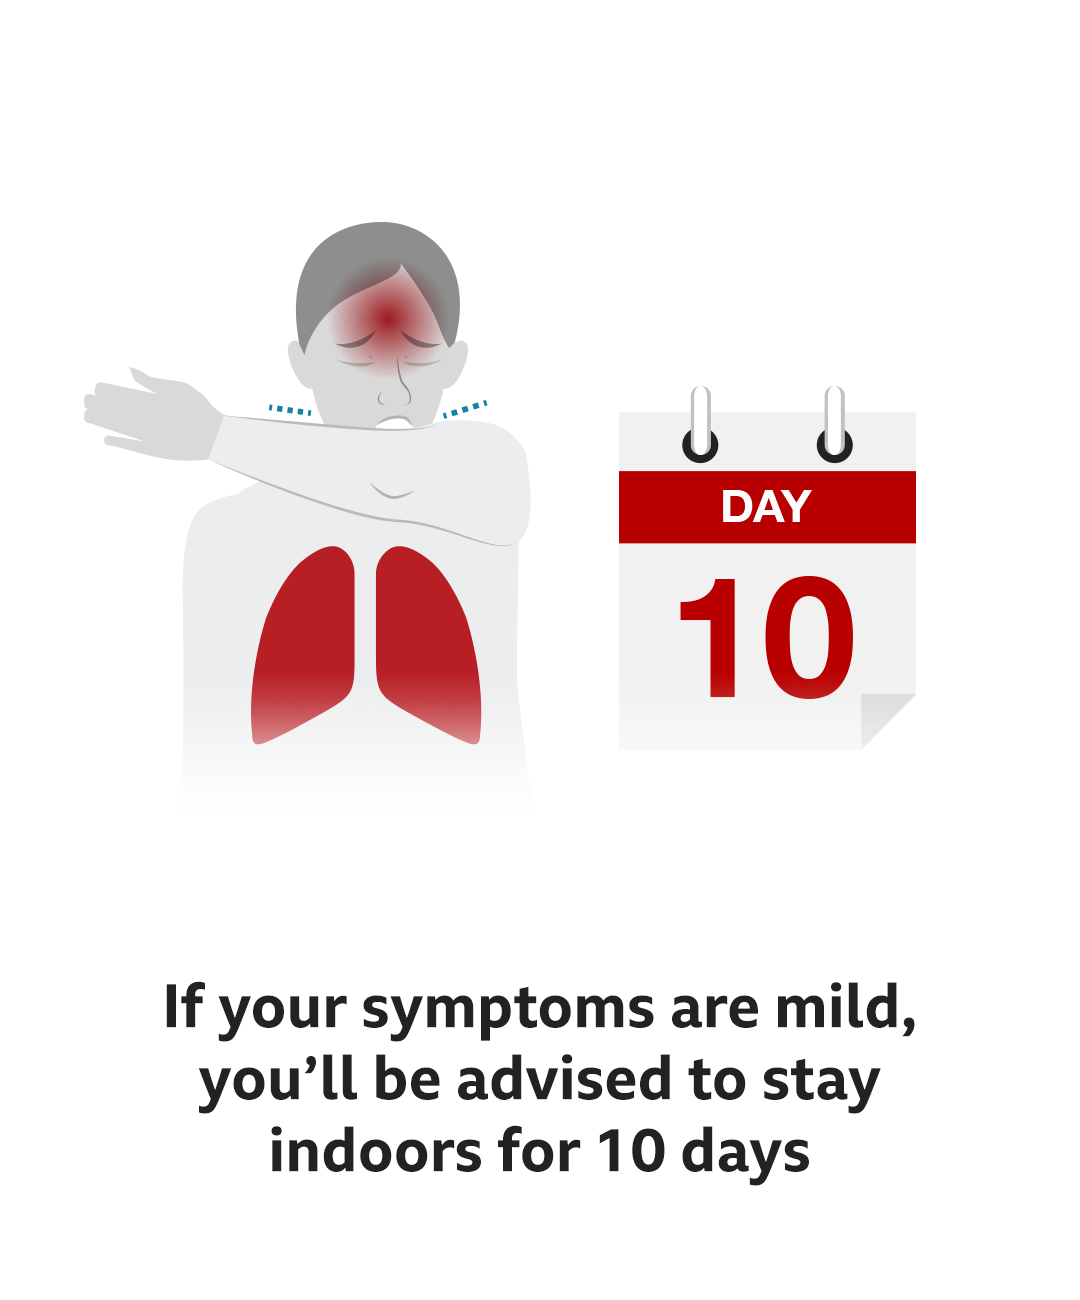 If your symptoms are mild you'll be advised to stay indoors for 10 days.